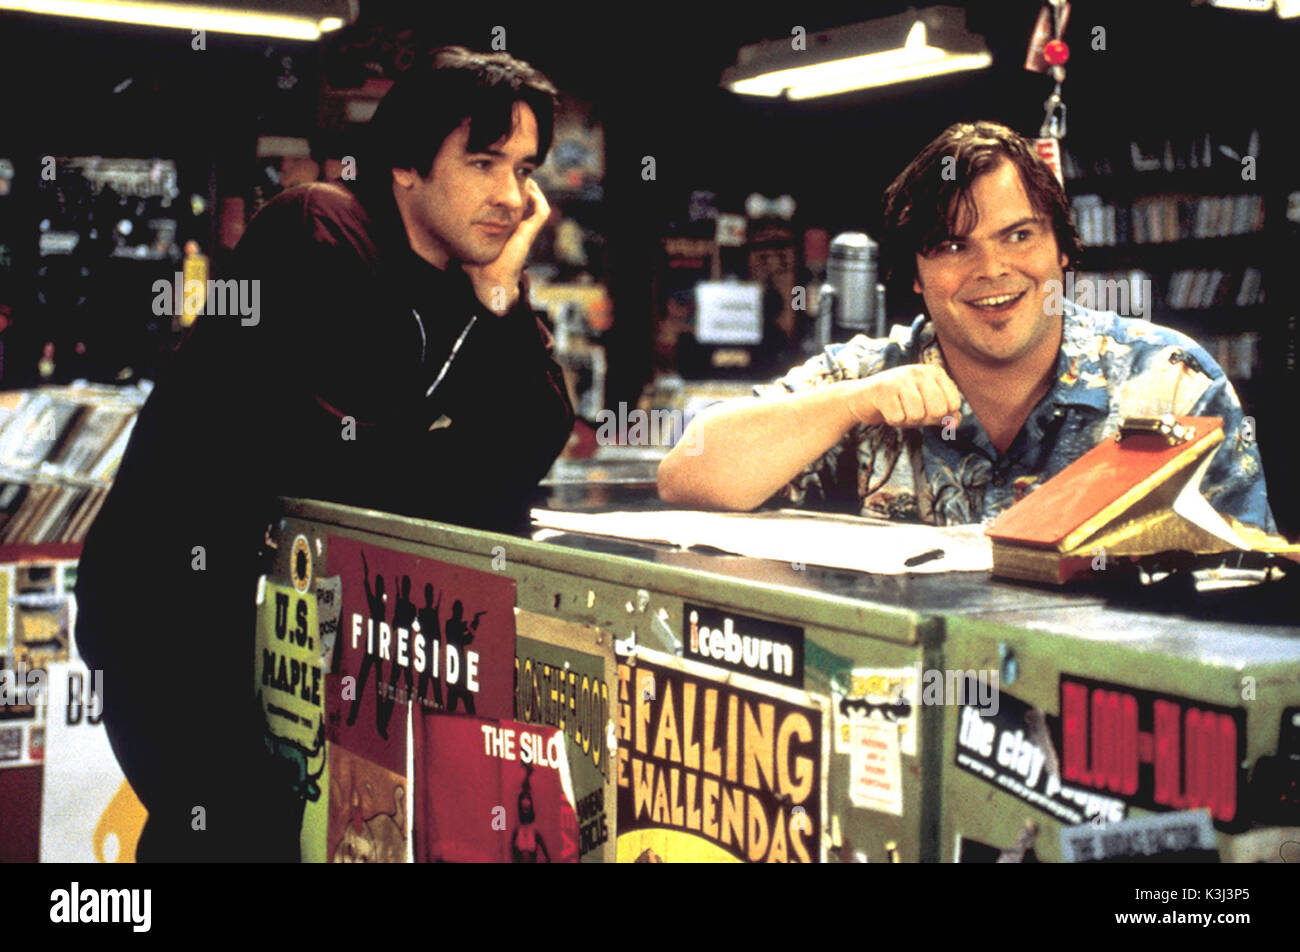 QUALITY: 3RD GENERATION-- HIGH FIDELITY-- FOR FURTHER INFORMATION CONTACT THE BUENA VISTA PRESS OFFICE ON TEL: 0208 222 16532828/1221 FAX: 0208 222 2494 HIGH FIDELITY JOHN CUSACK, JACK BLACK     Date: 2000 - Stock Image